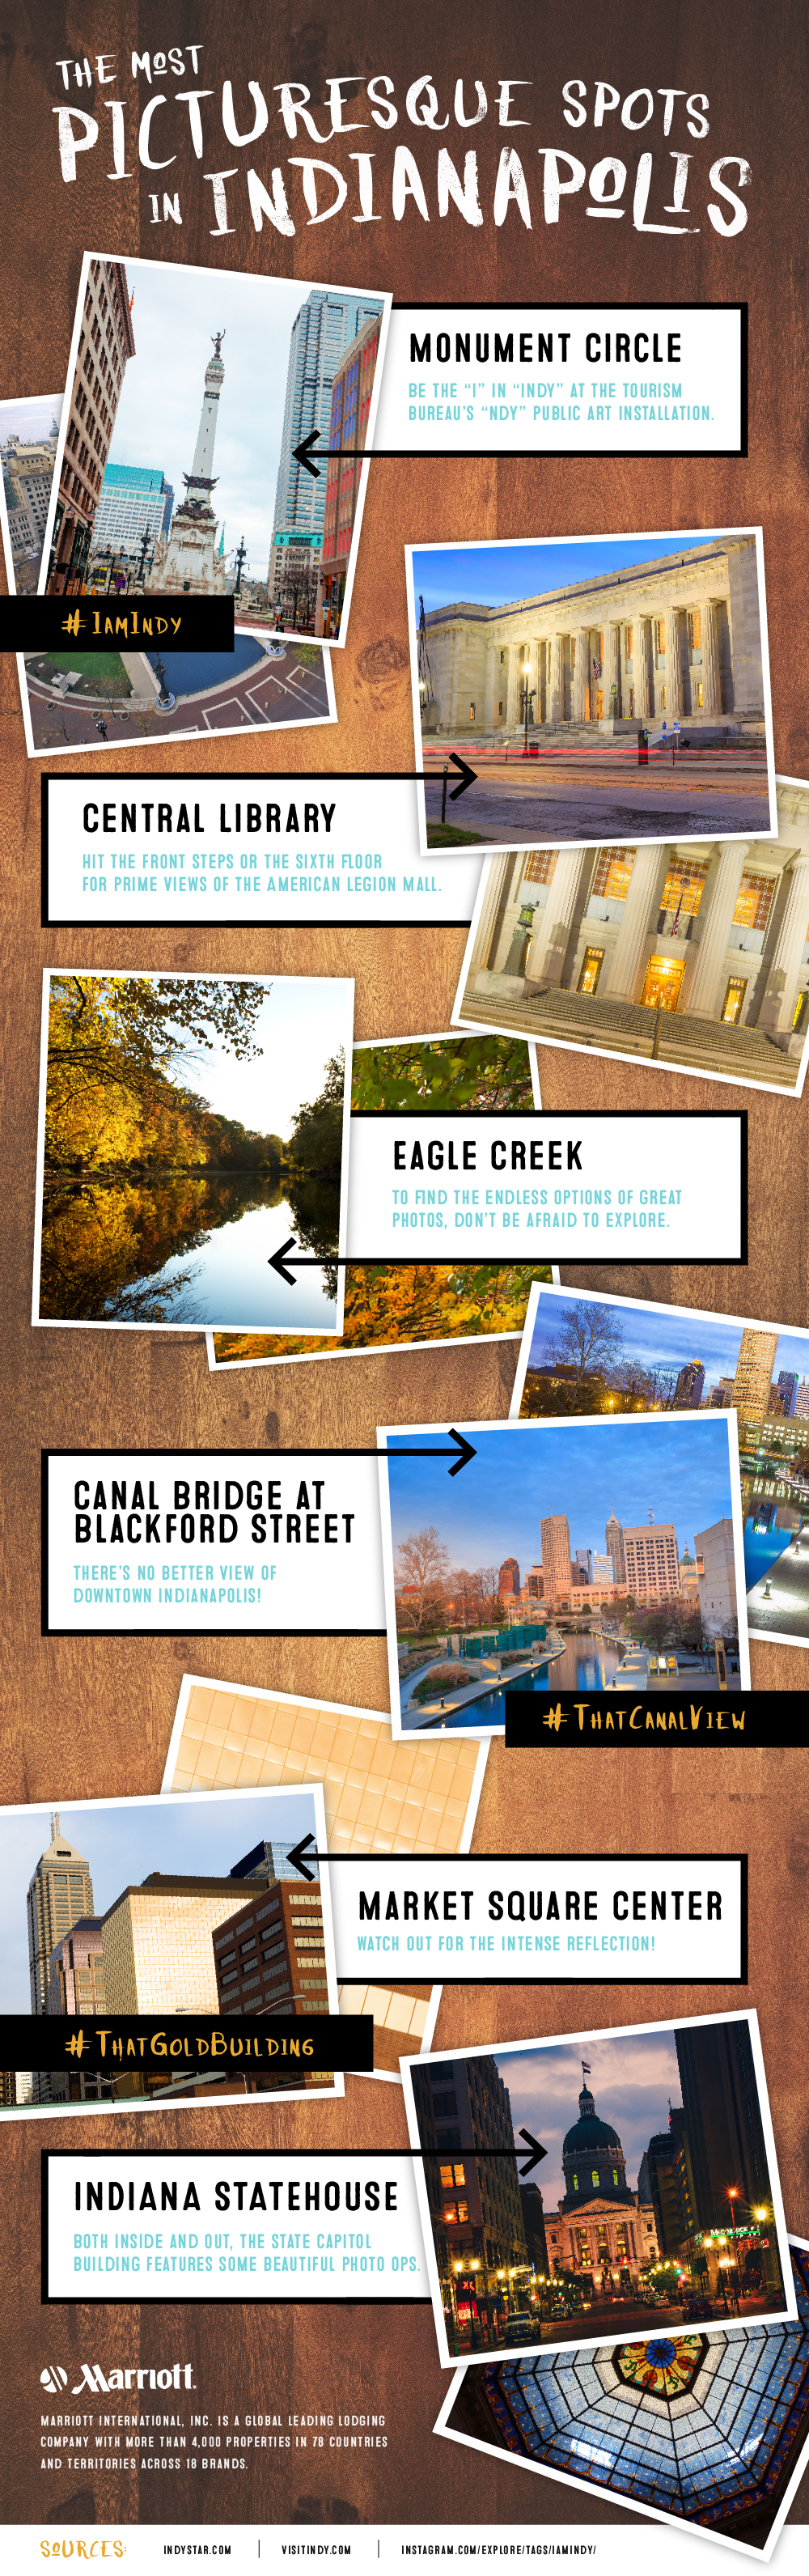 The Most Picturesque Places in Indianapolis